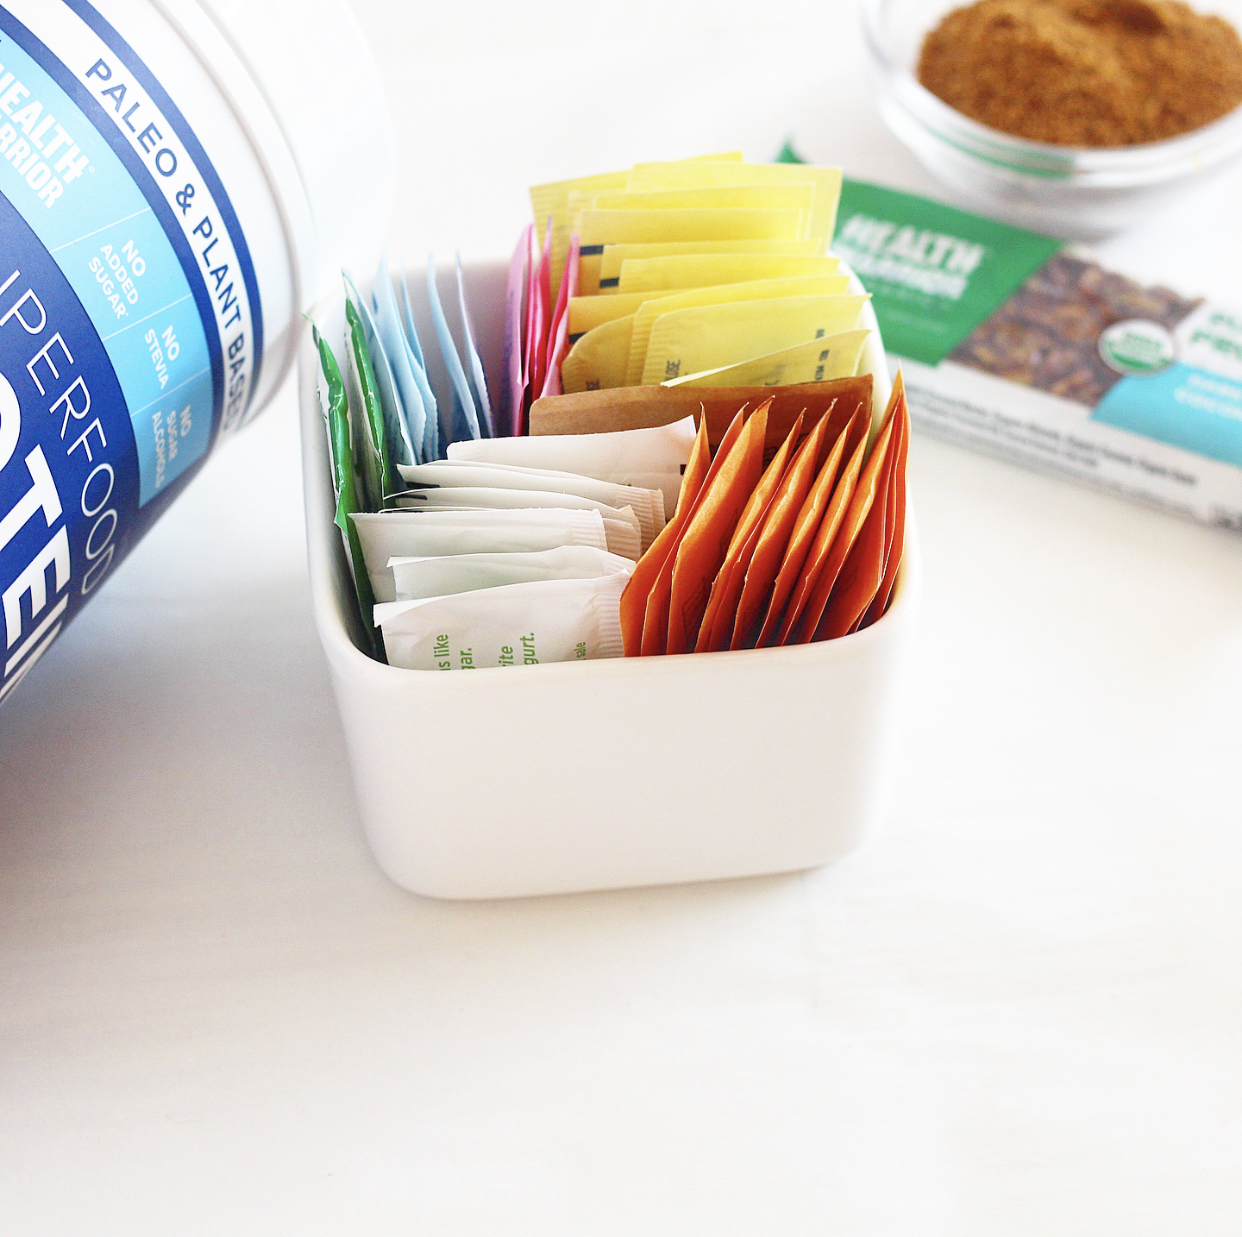 Artificial sweeteners, sugar alcohols, and natural sweeteners: Are they ok and how much can you use?